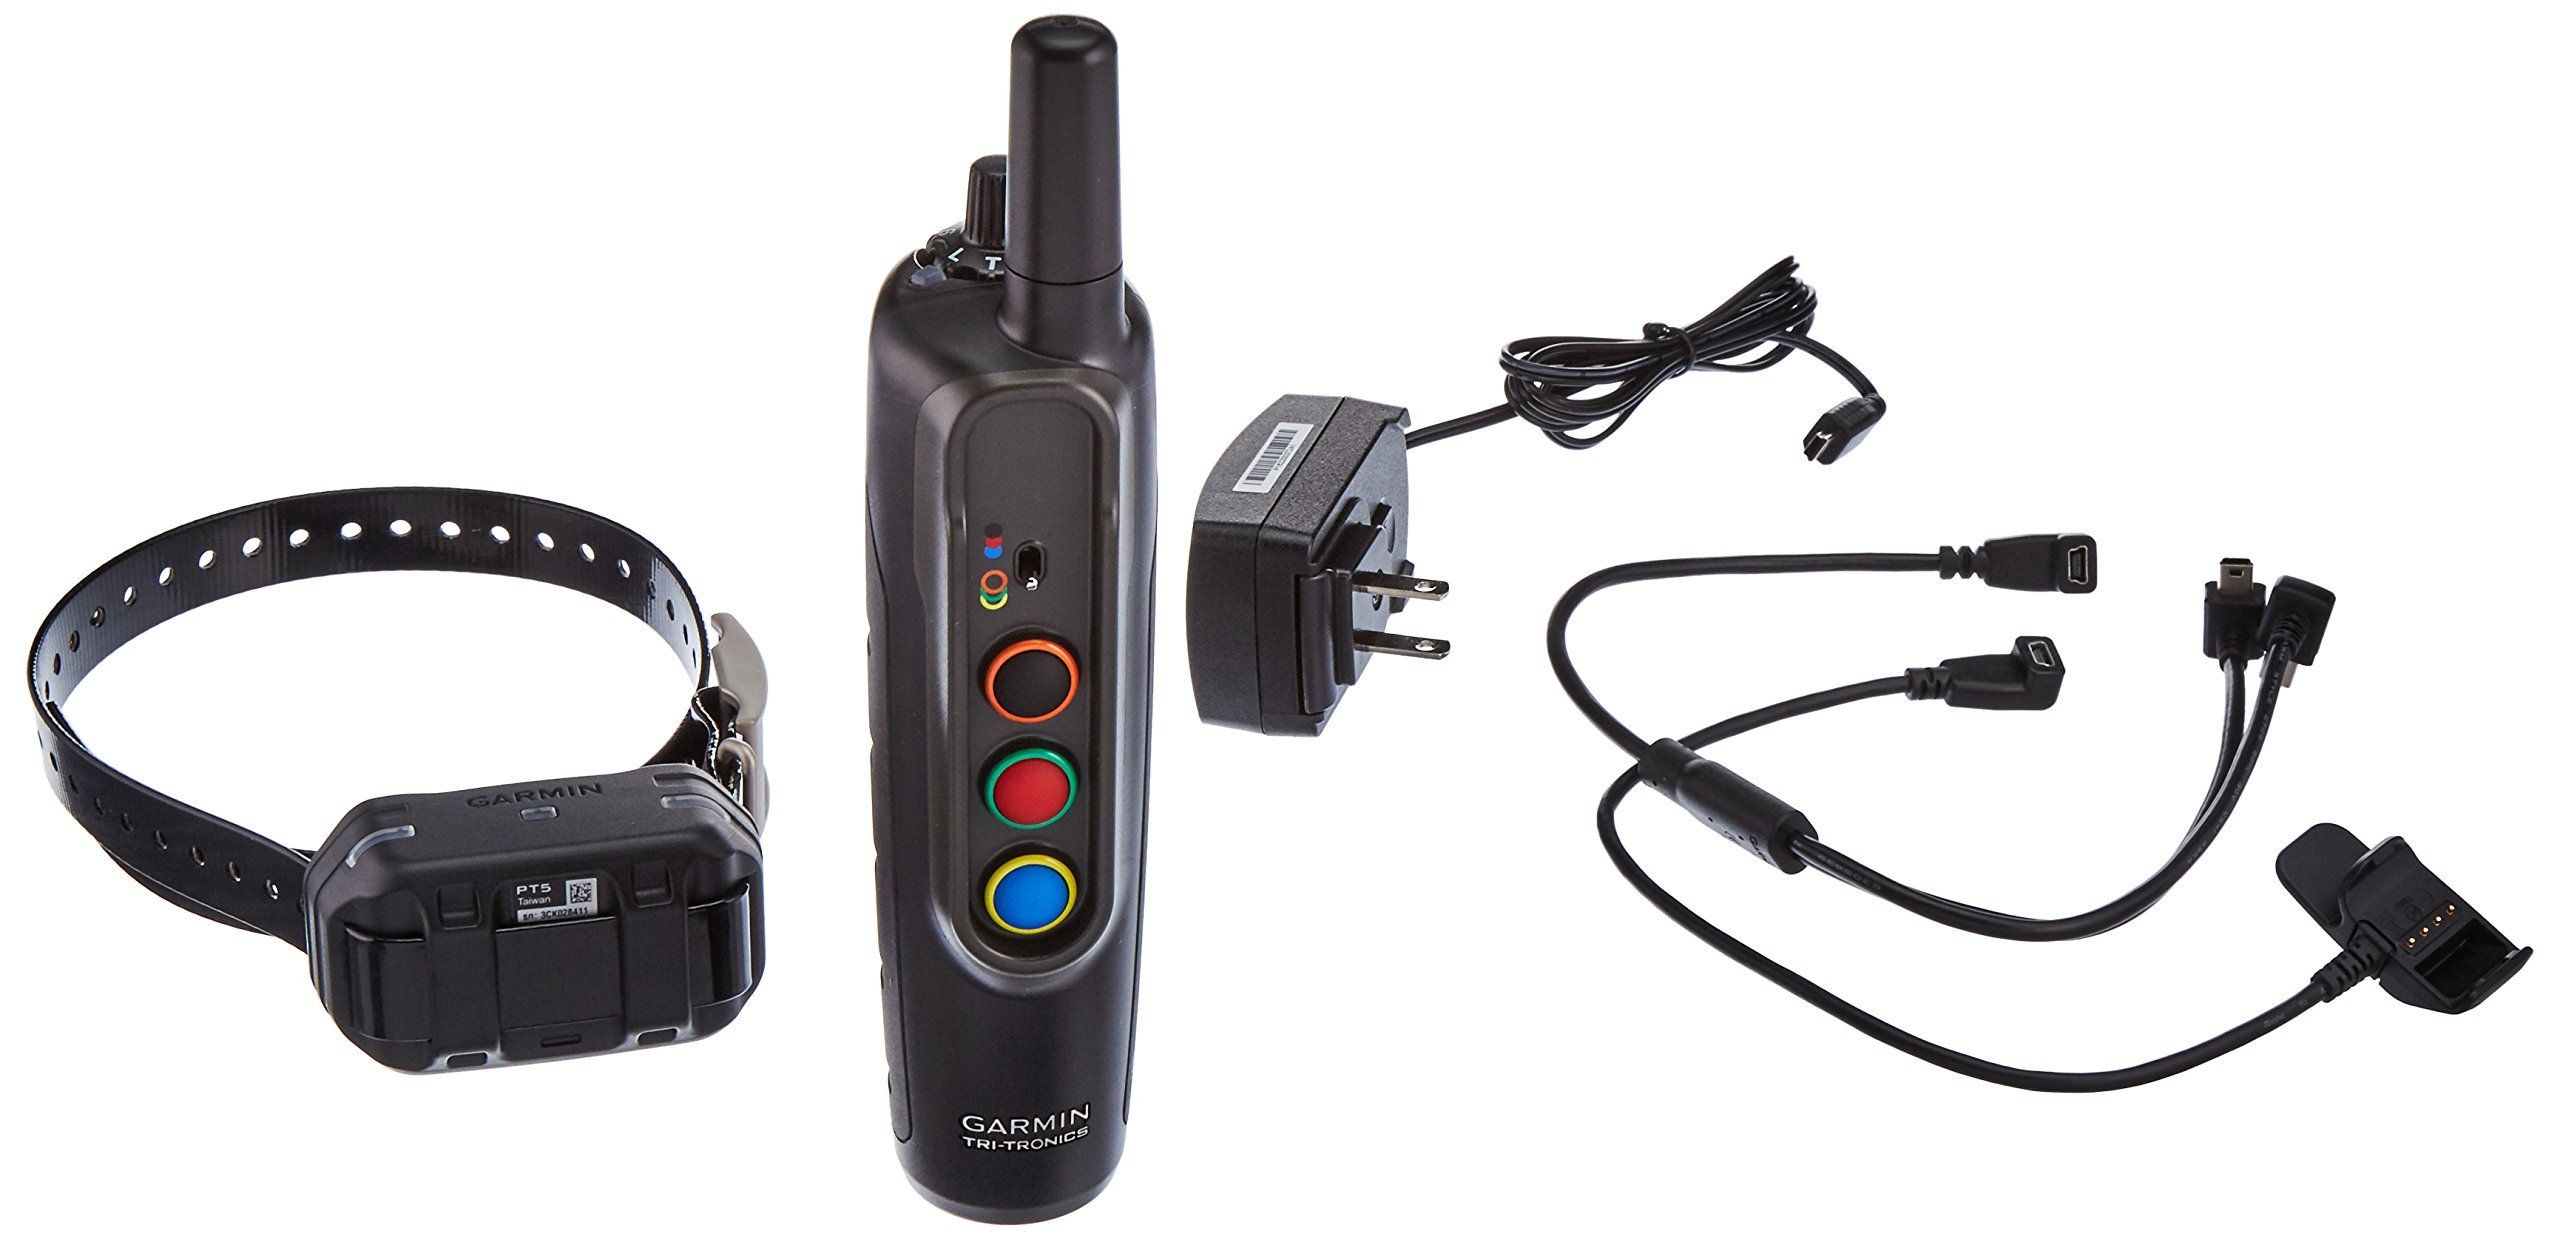 Garmin Pro 70 Dog Training System Be Sure To Check Out This